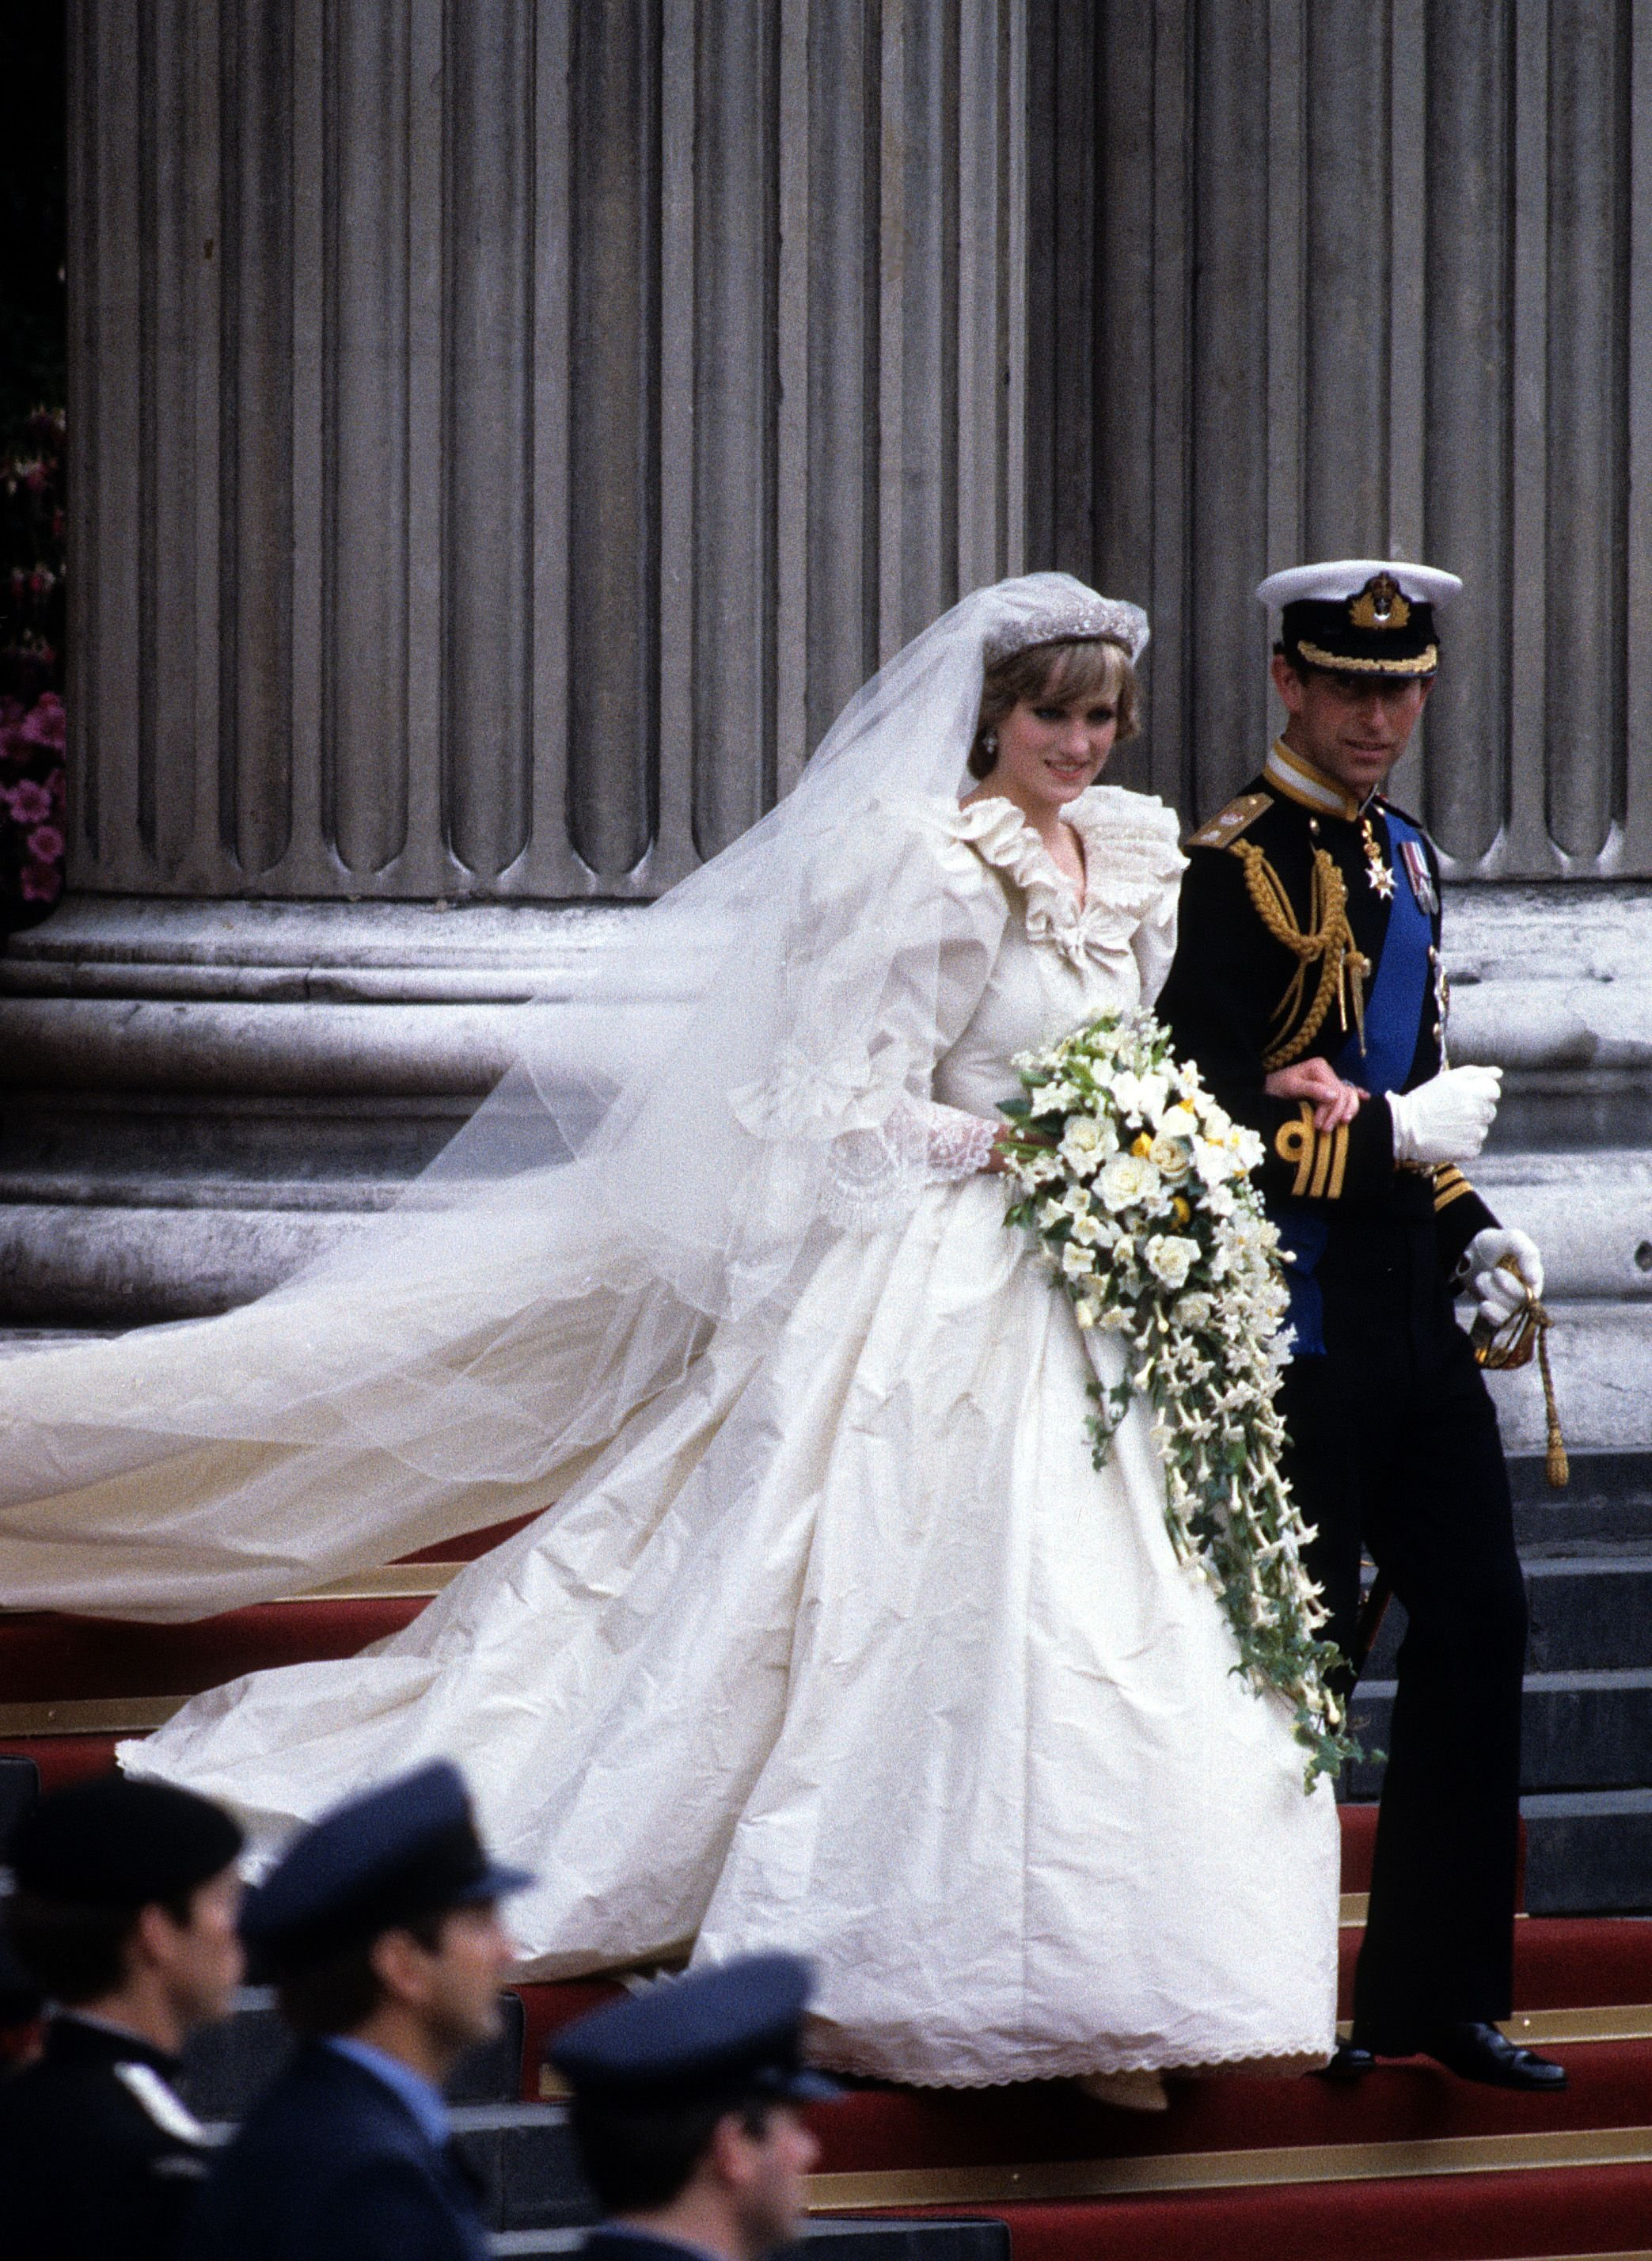 Princess DIana and Prince Charles on their wedding day, July 29, 1981| Source: Getty Images